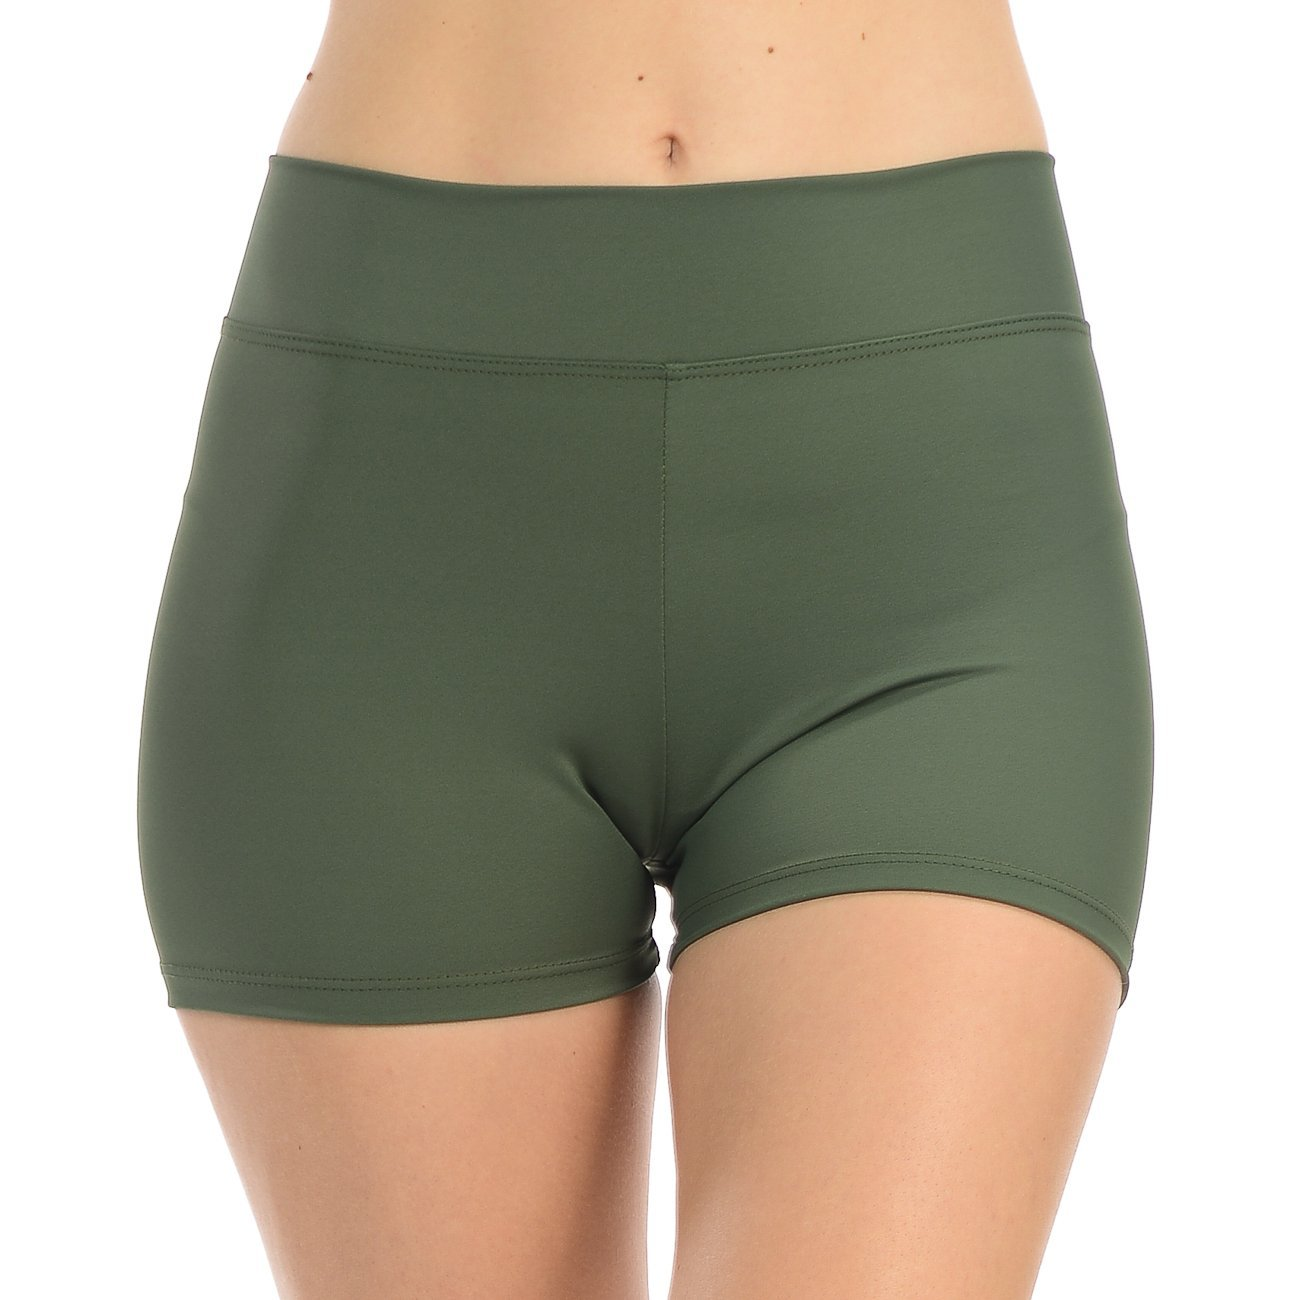 ANZA Girls Active Wear Dance Booty Shorts-Olive,Medium(8/10) by Anza Collection